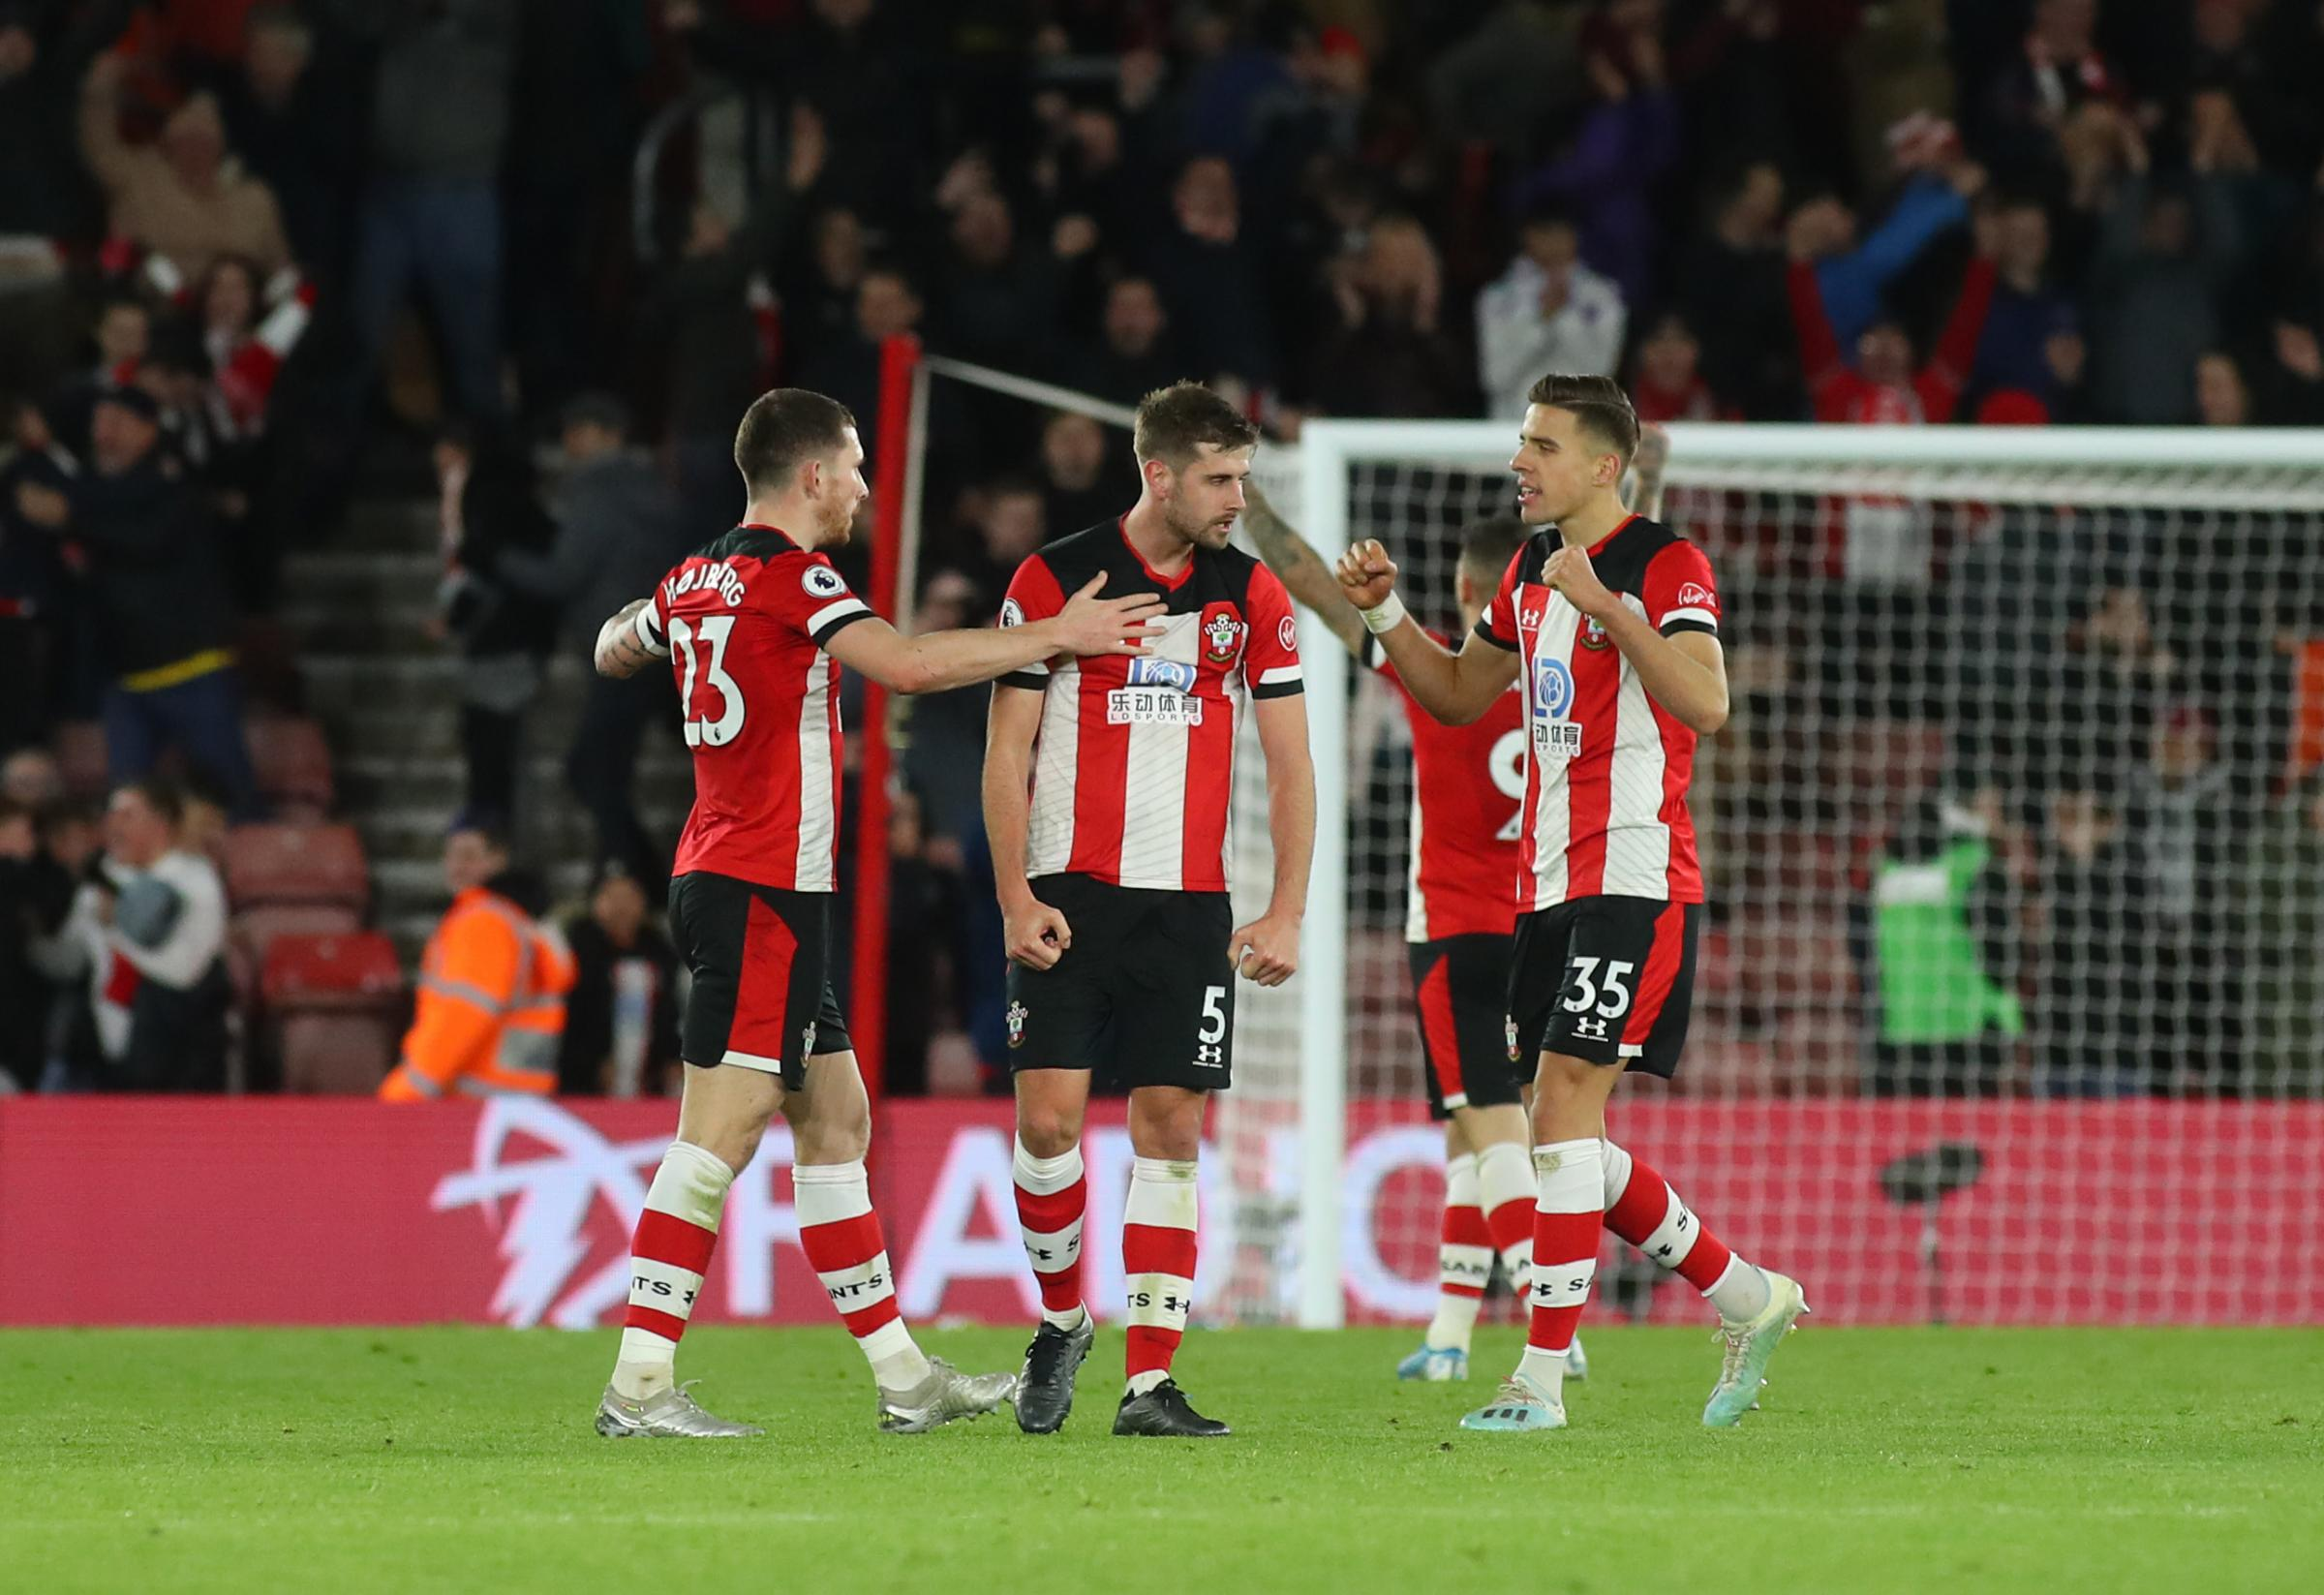 Southampton's players will train at home until next month